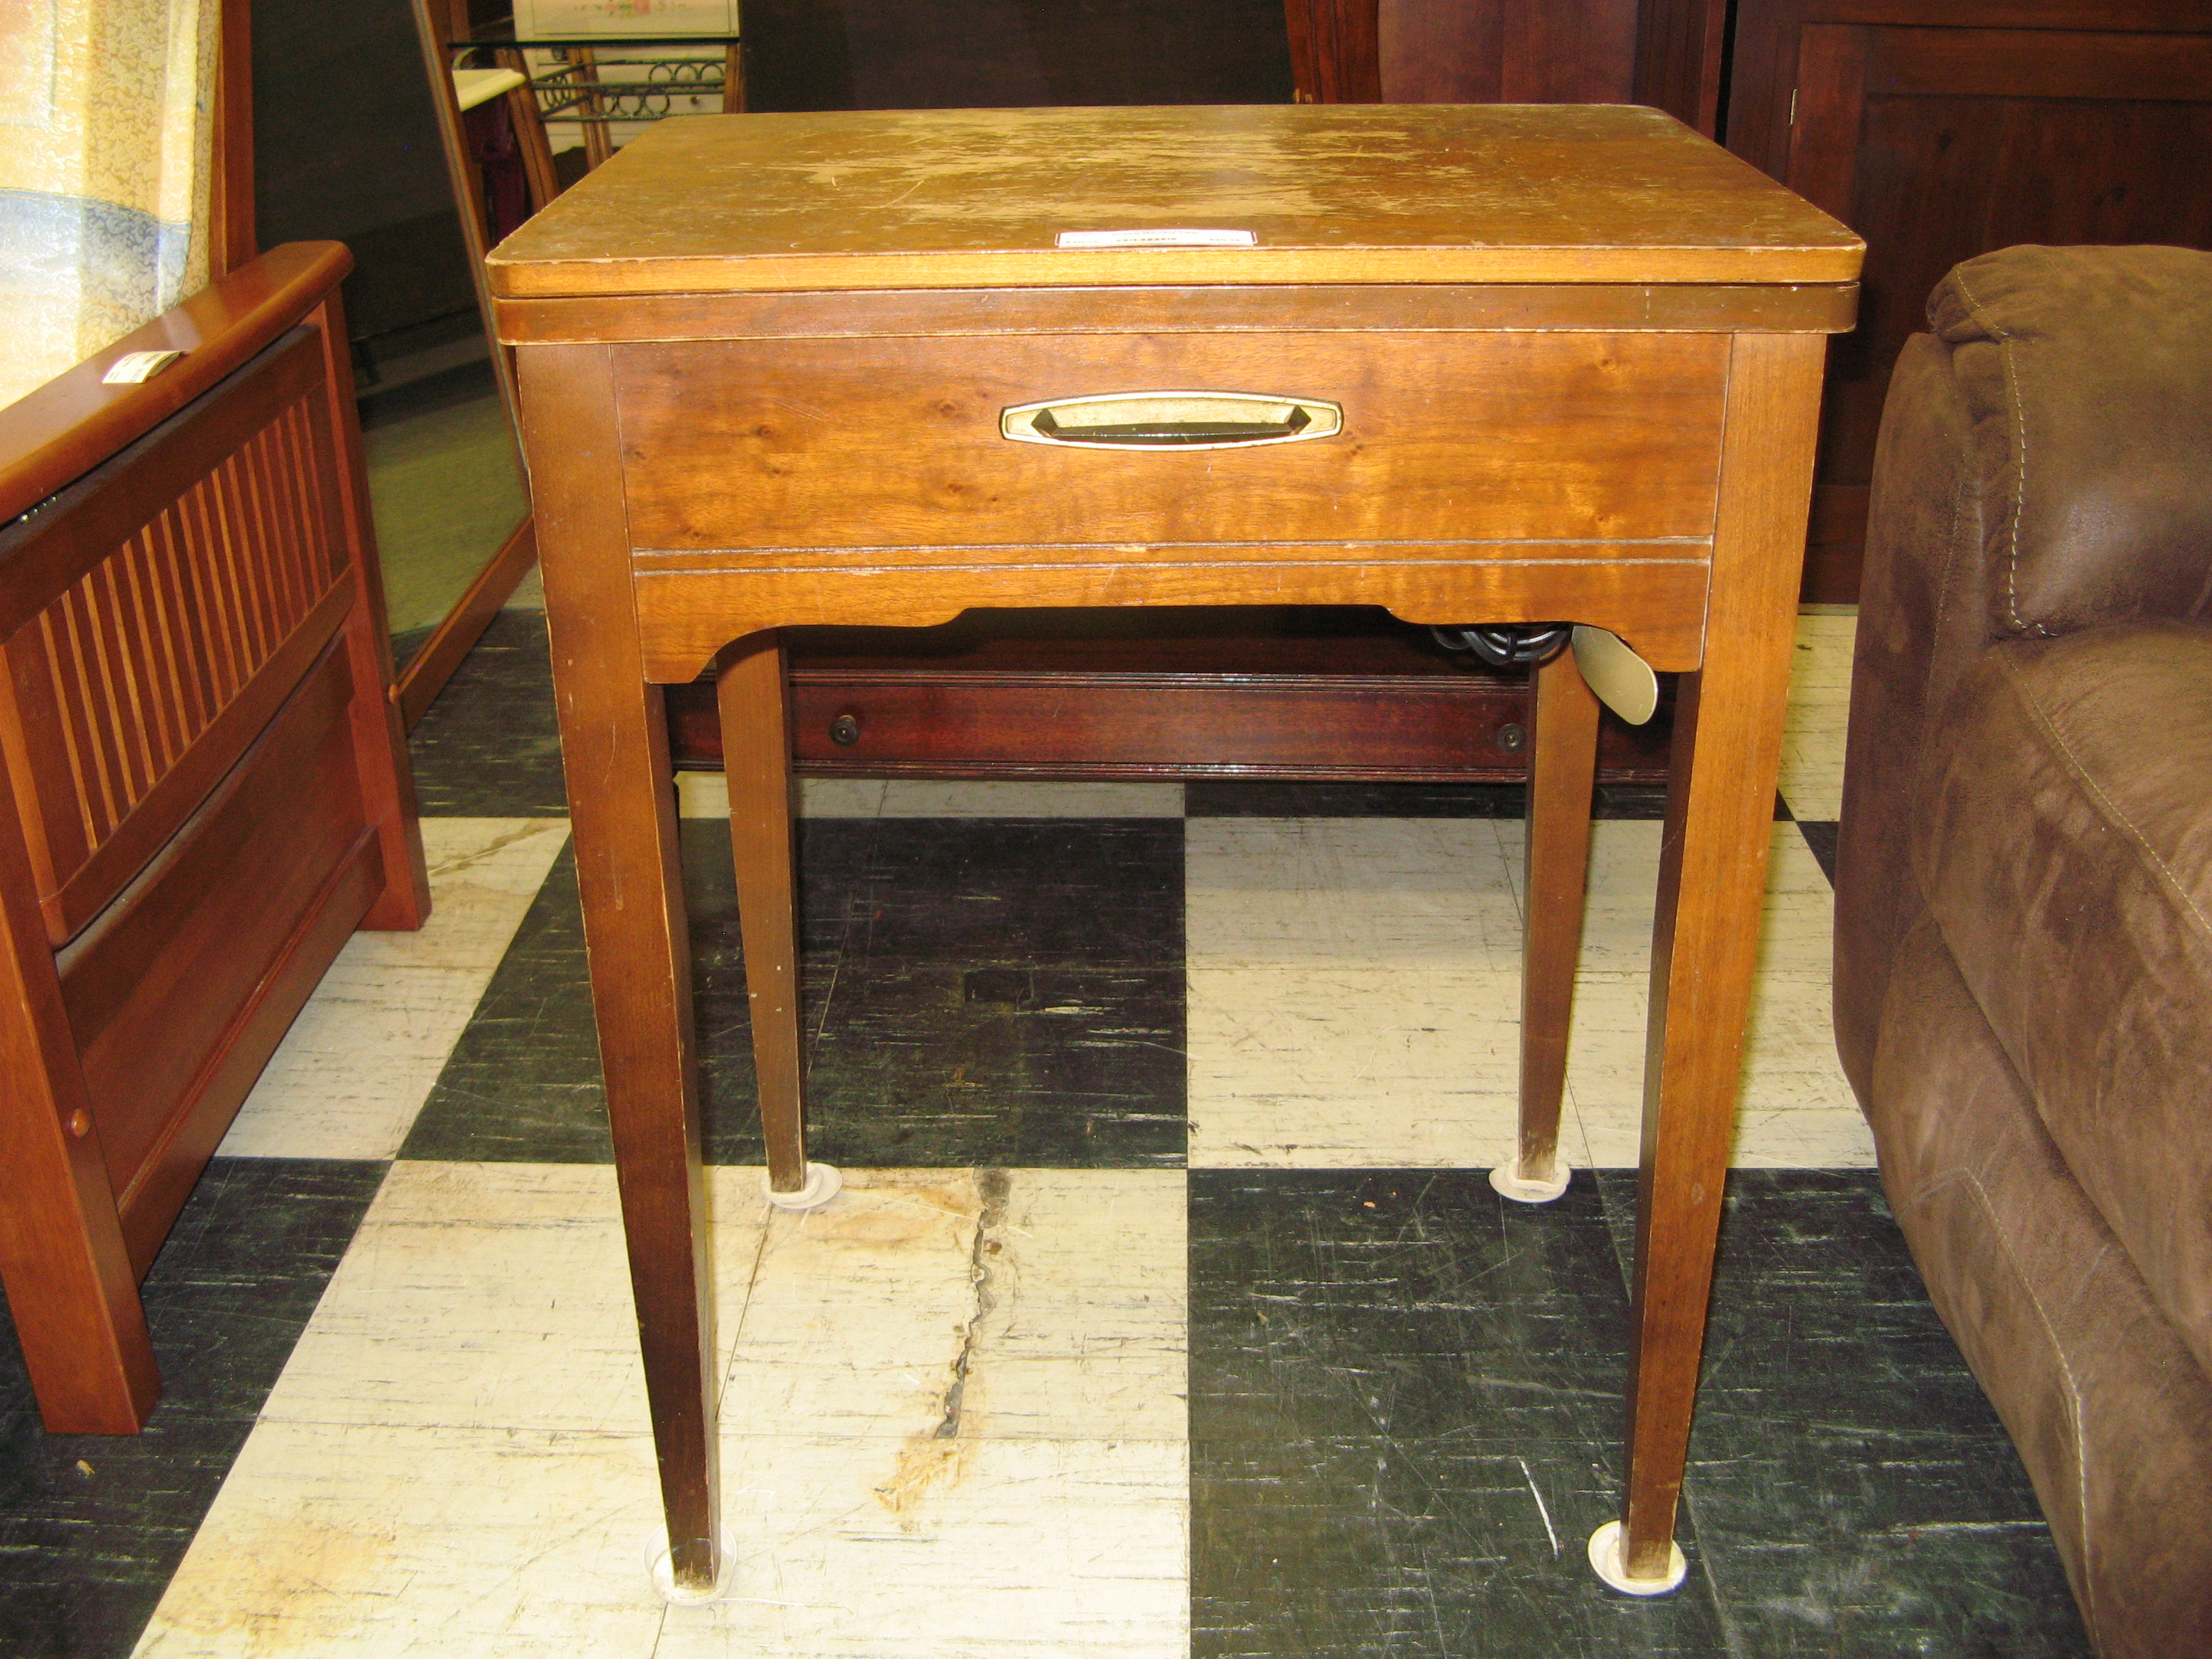 Sewing Machine Table without Sewing Machine